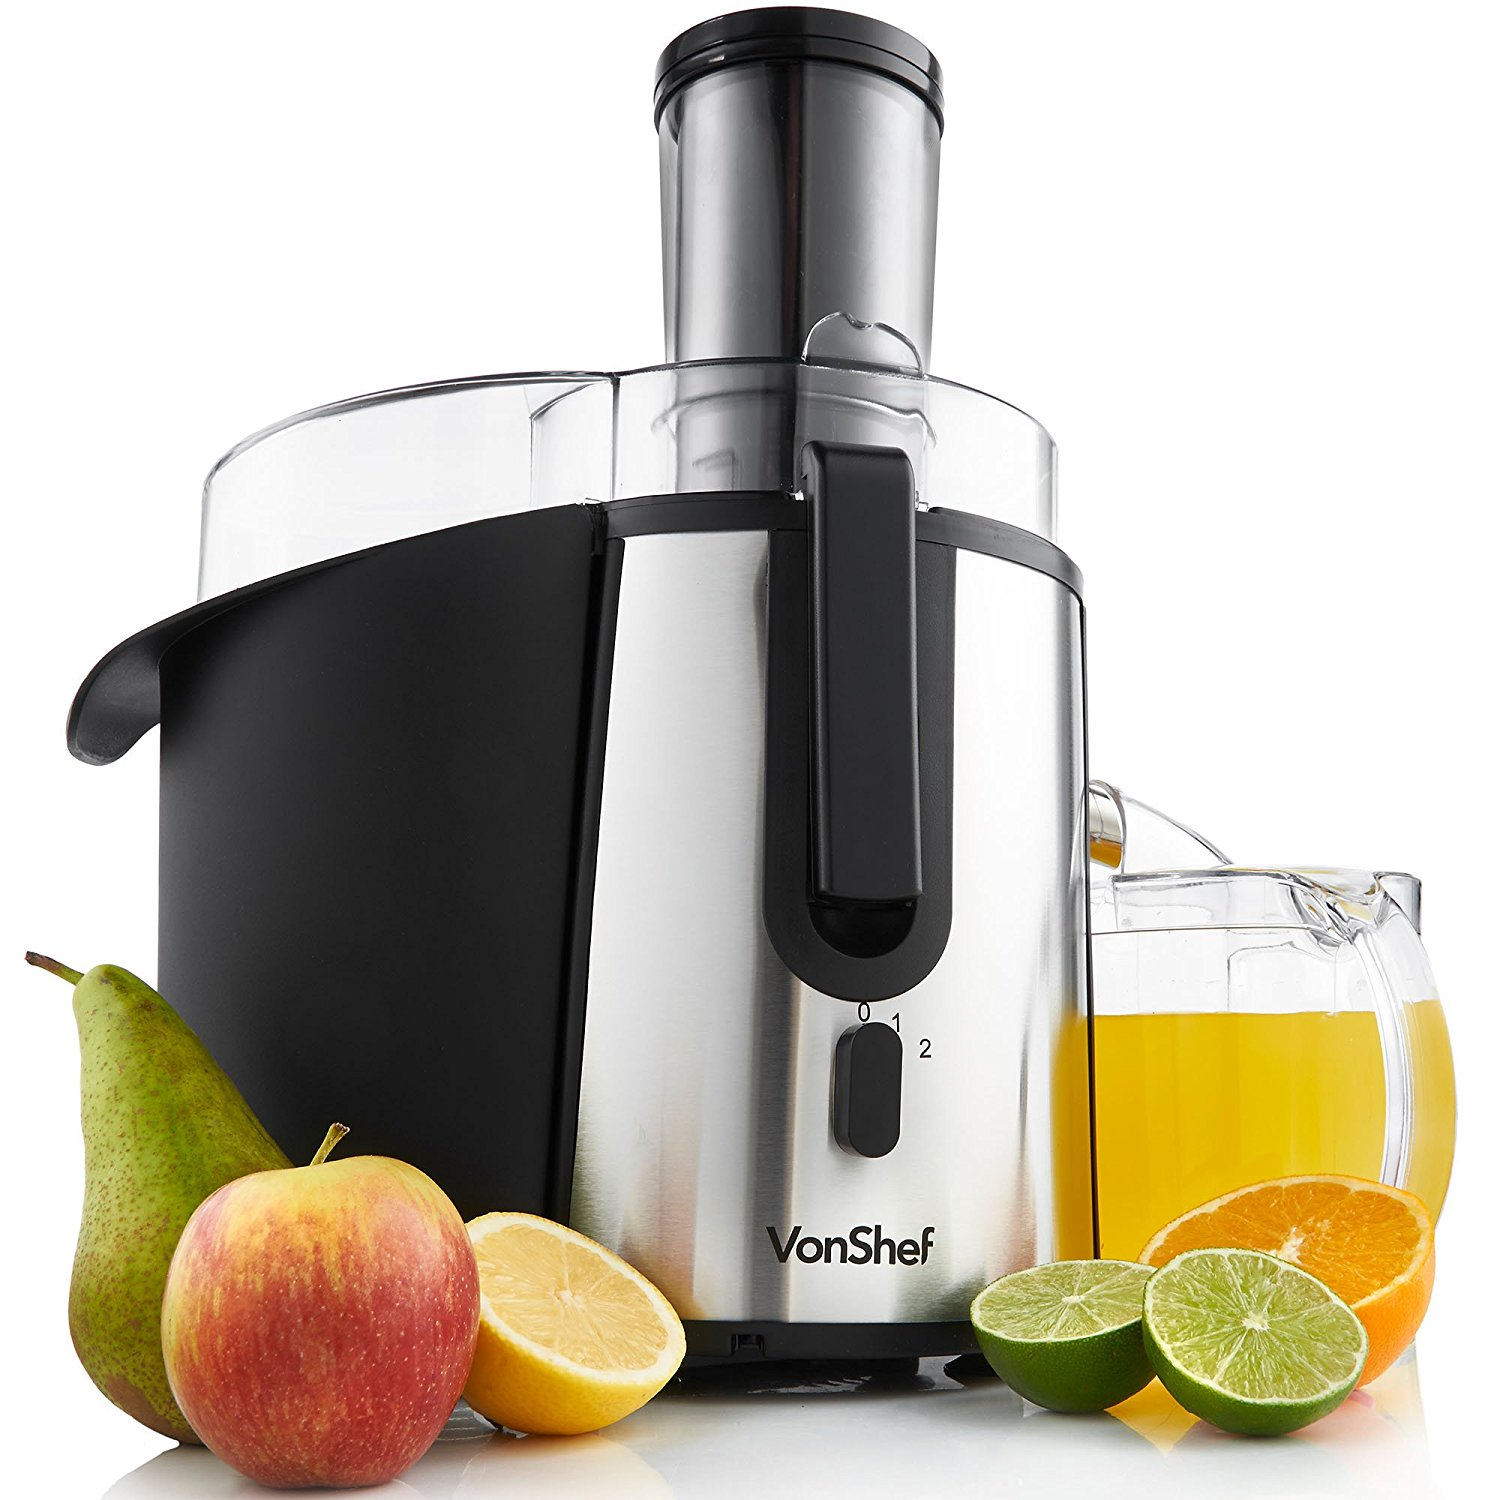 Professional Powerful Wide Mouth Whole Fruit Juicer Machine 700w Max